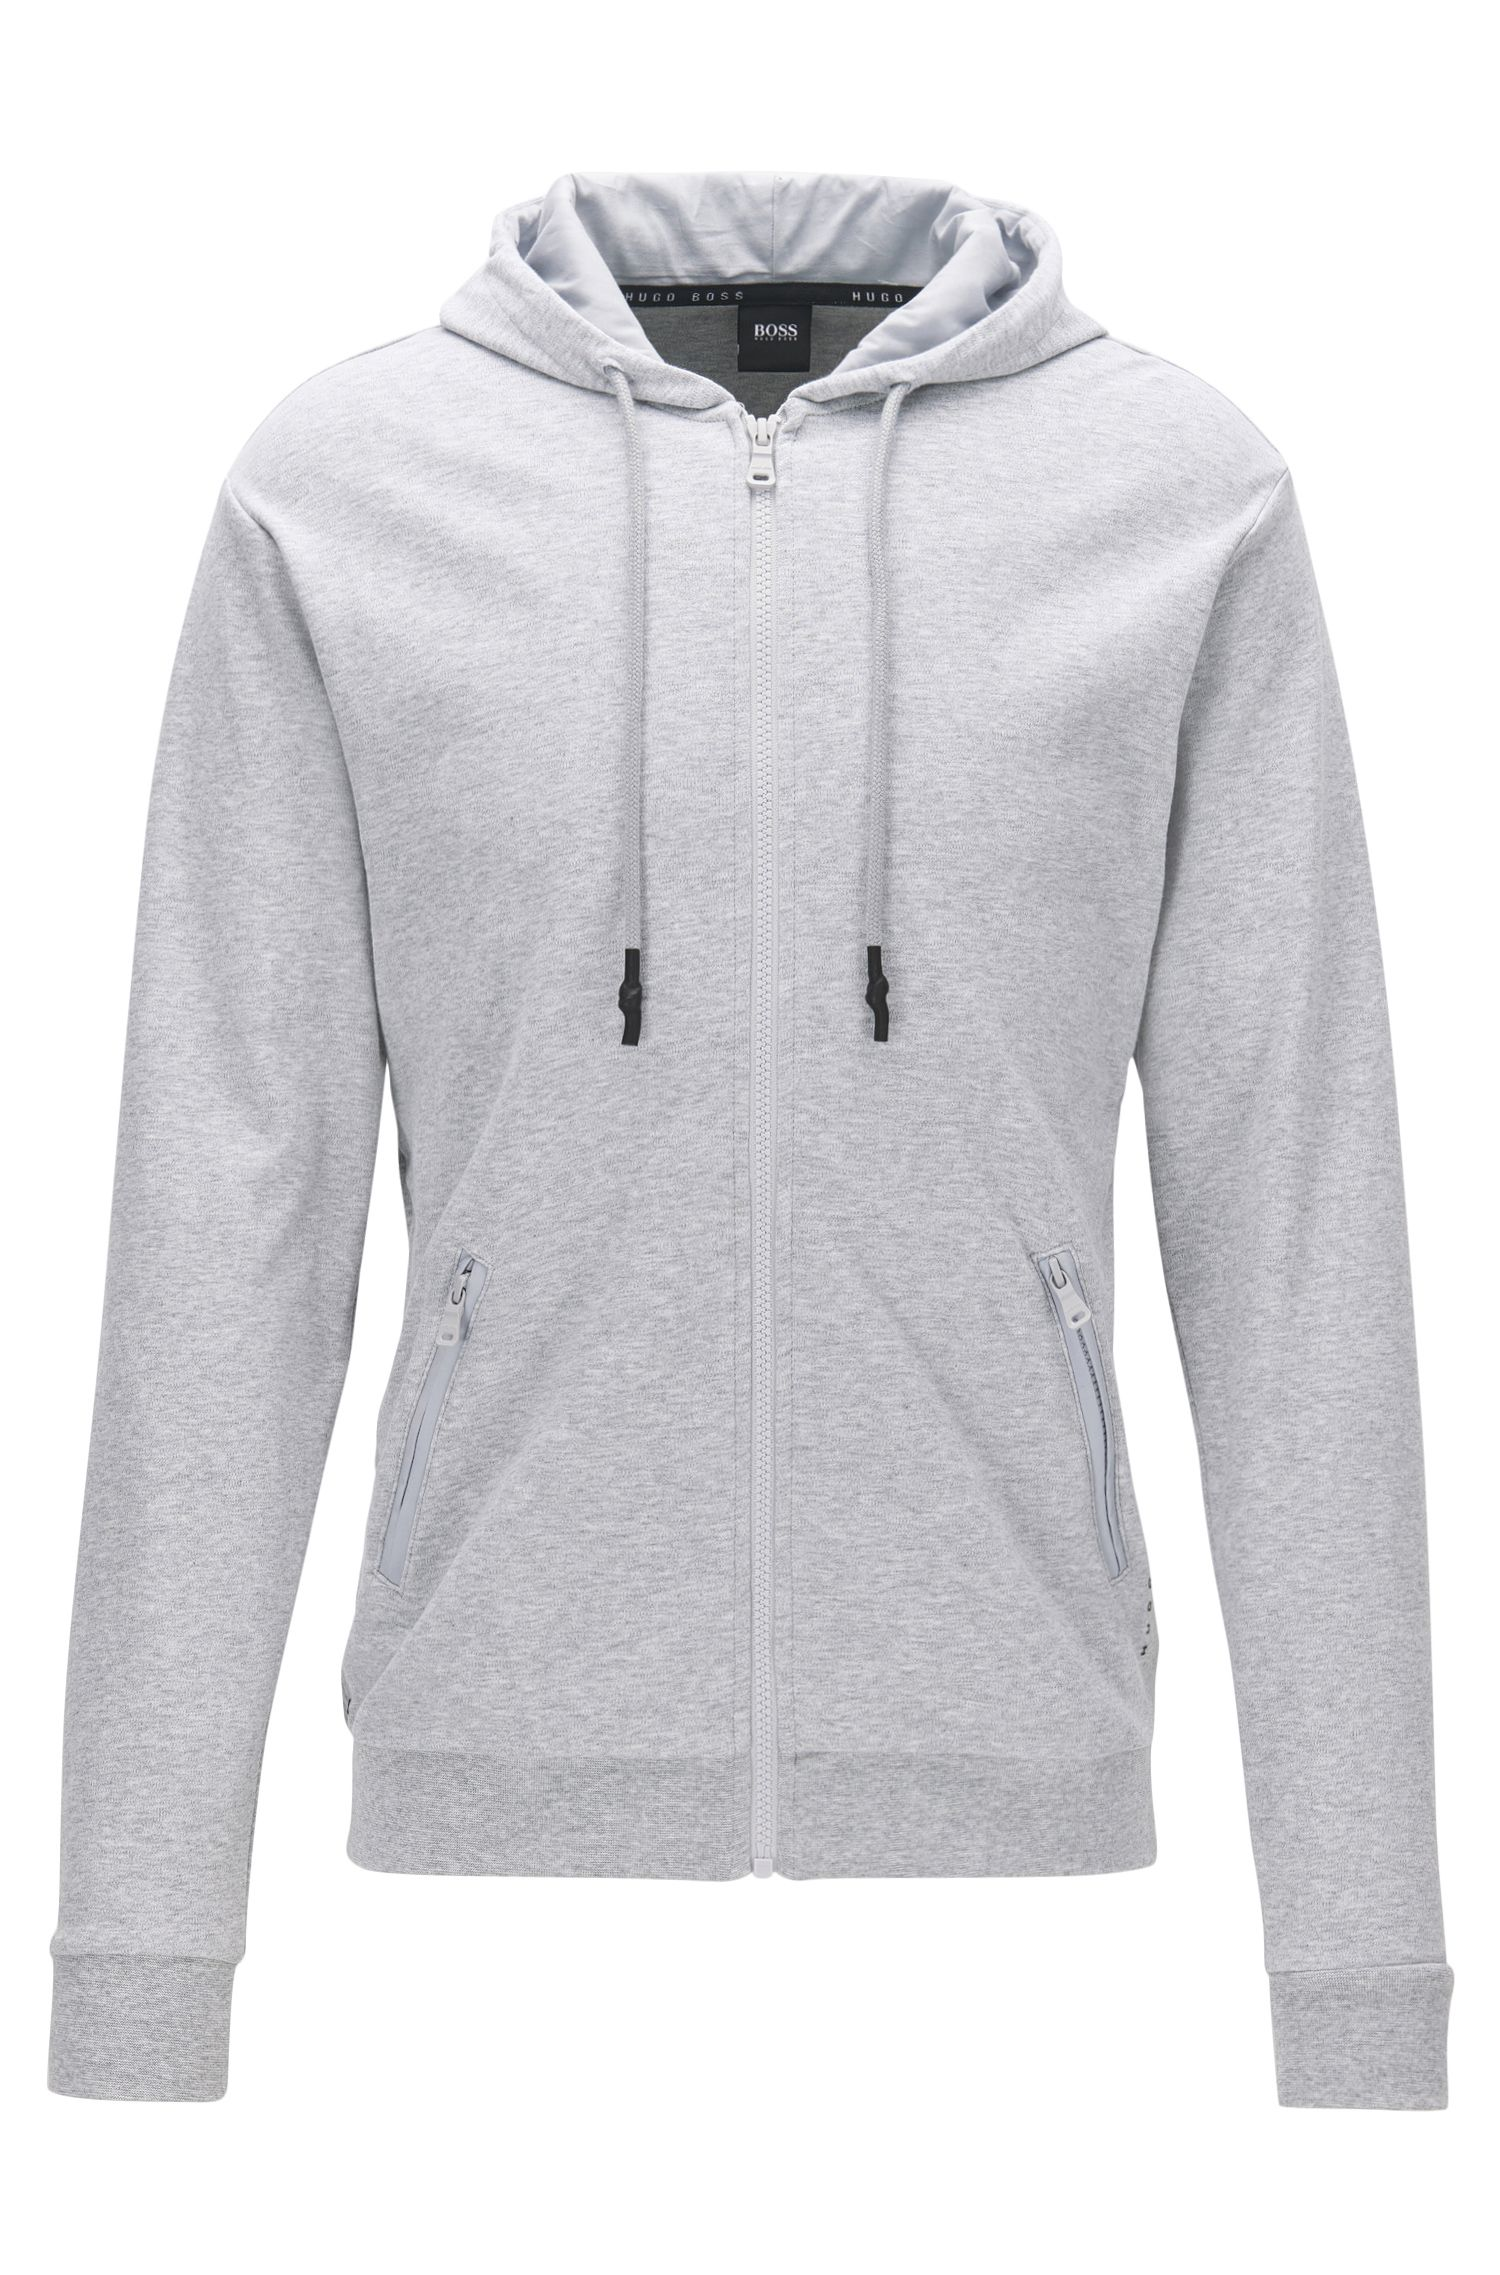 Zip-through hooded jacket in interlock cotton